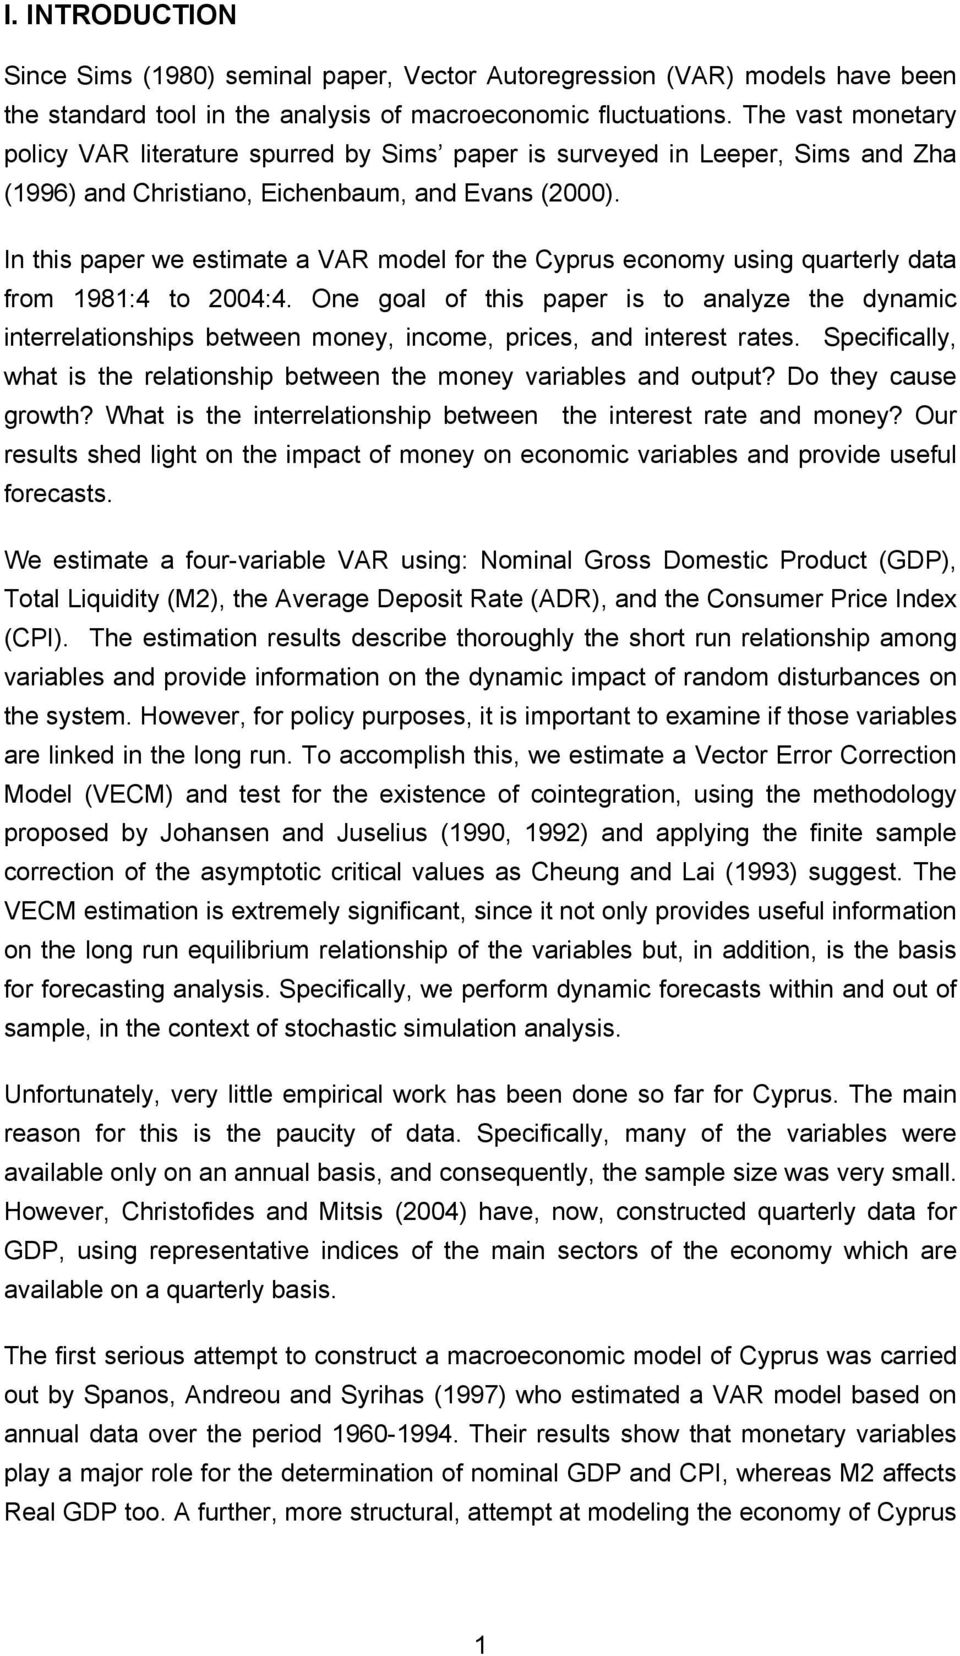 In this paper we estimate a VAR model for the Cyprus economy using quarterly data from 1981:4 to 2004:4.